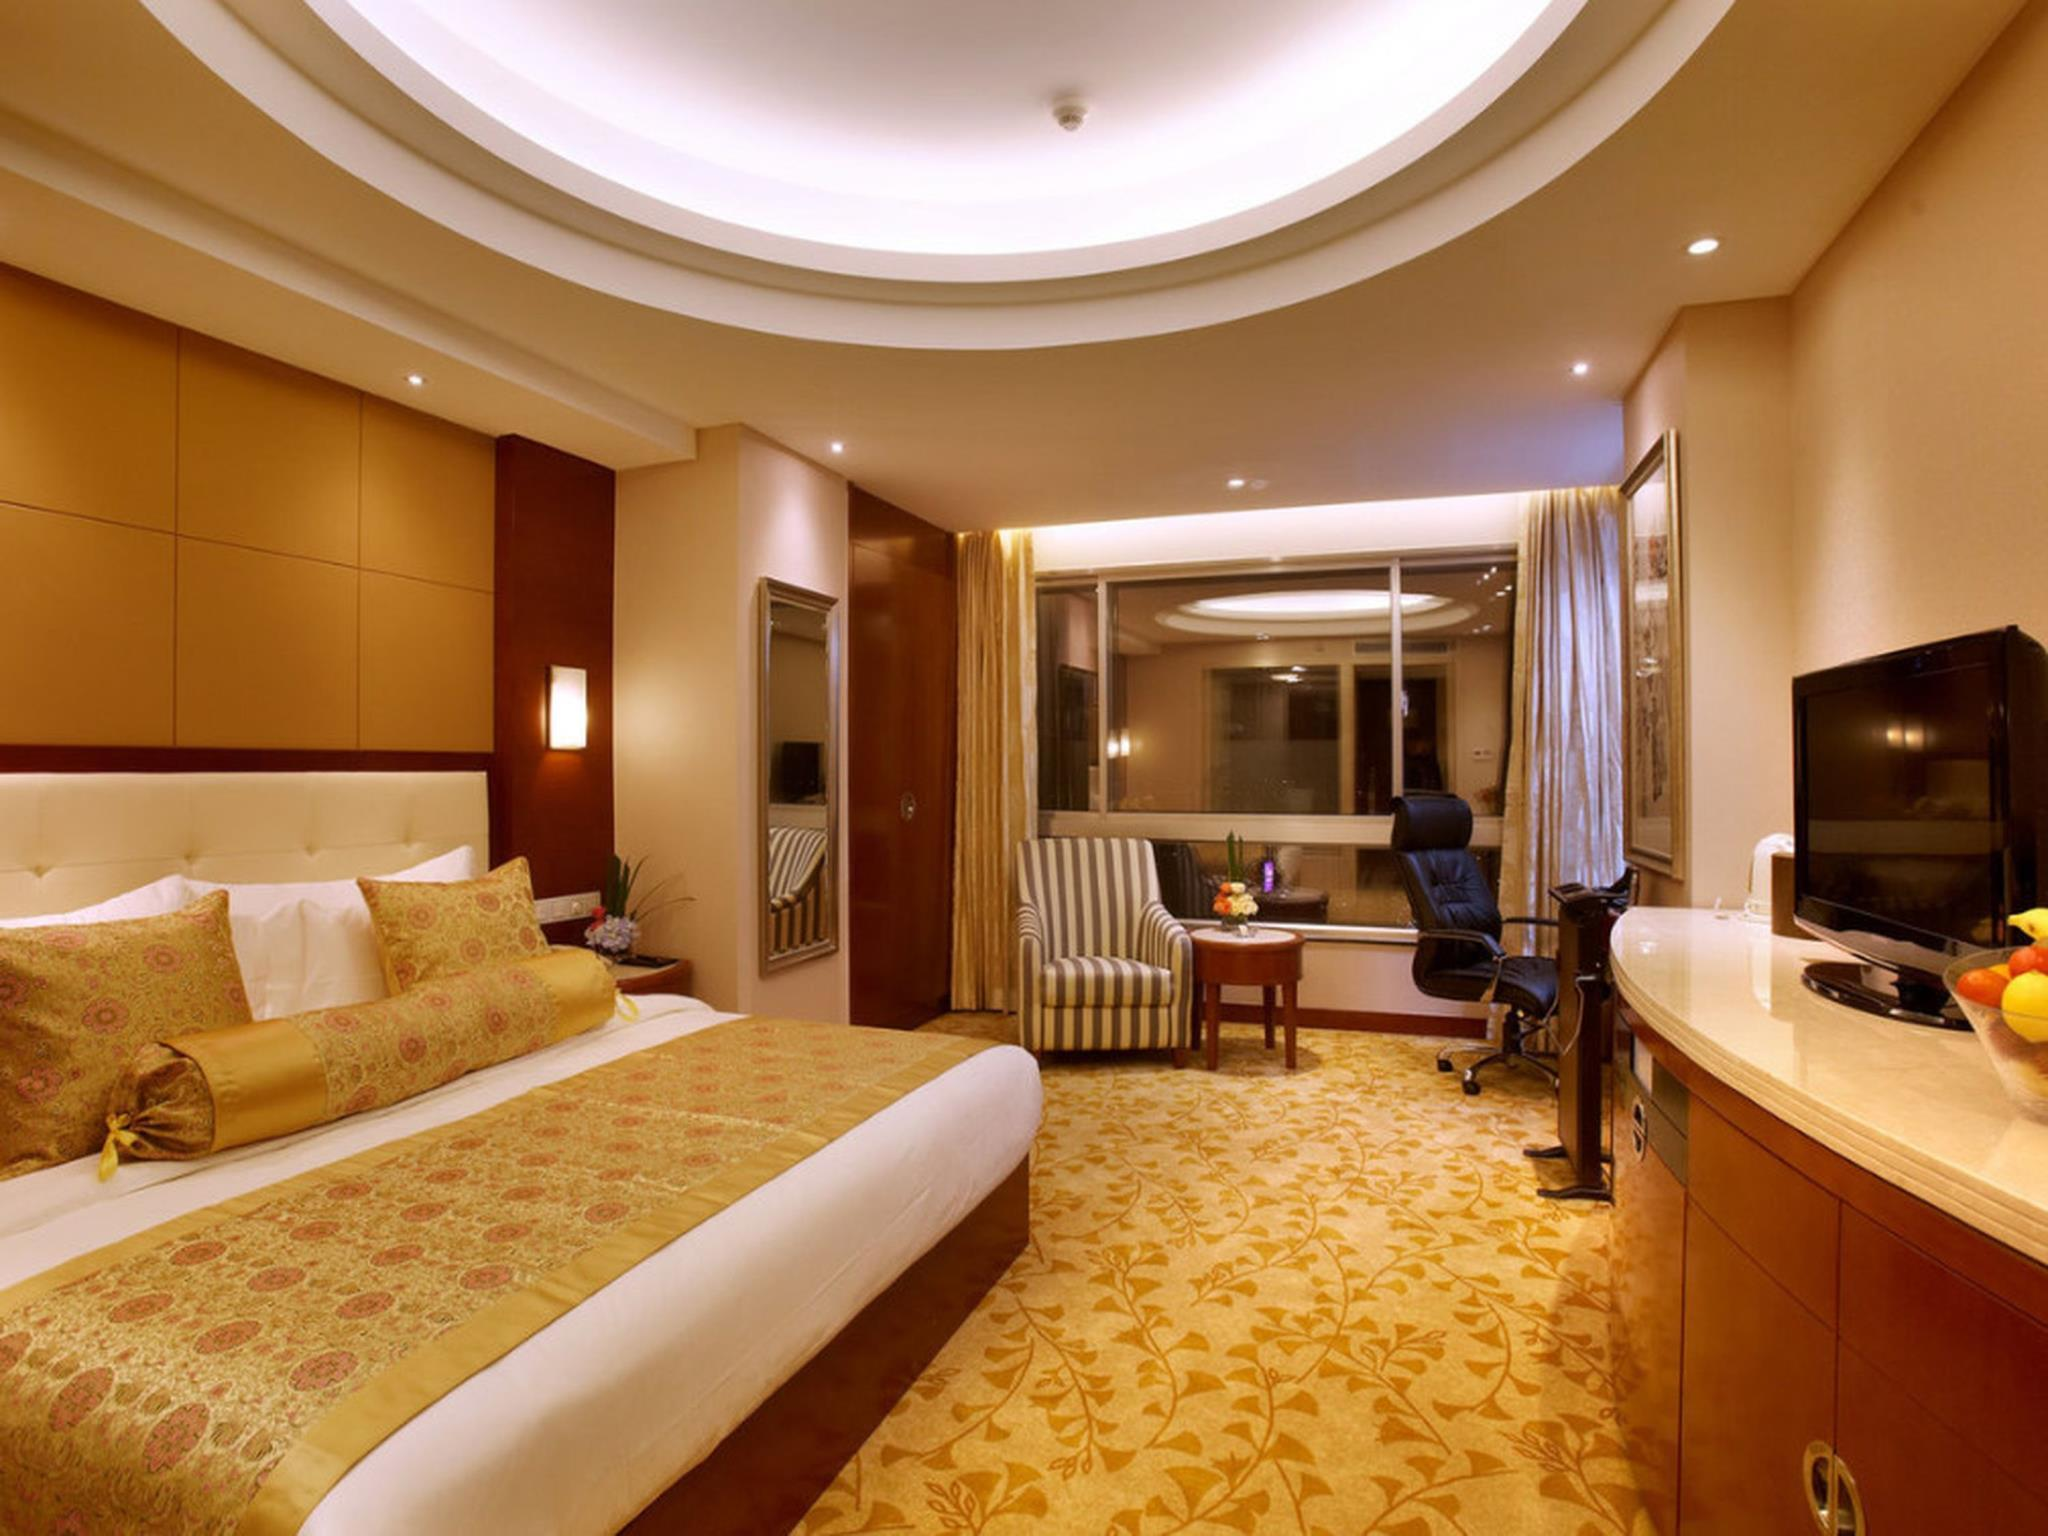 Superior Queen Pemandangan Sungai (Superior River View Queen Room)